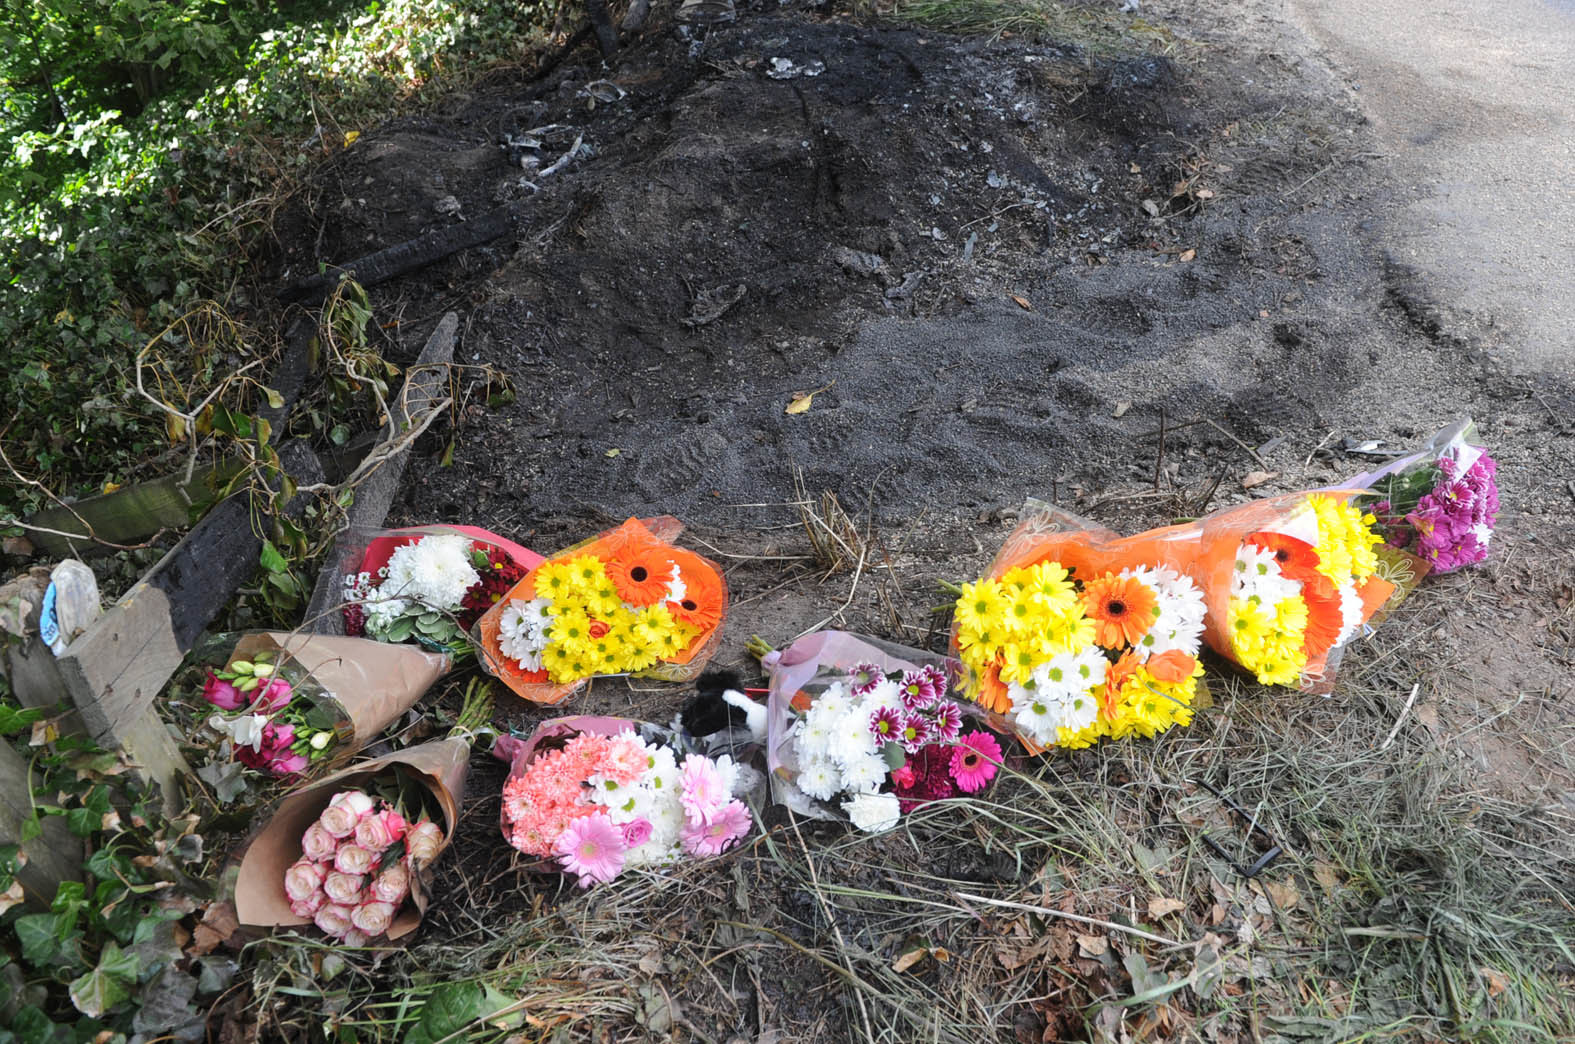 TRIBUTES: Flowers at the scene of the crash.